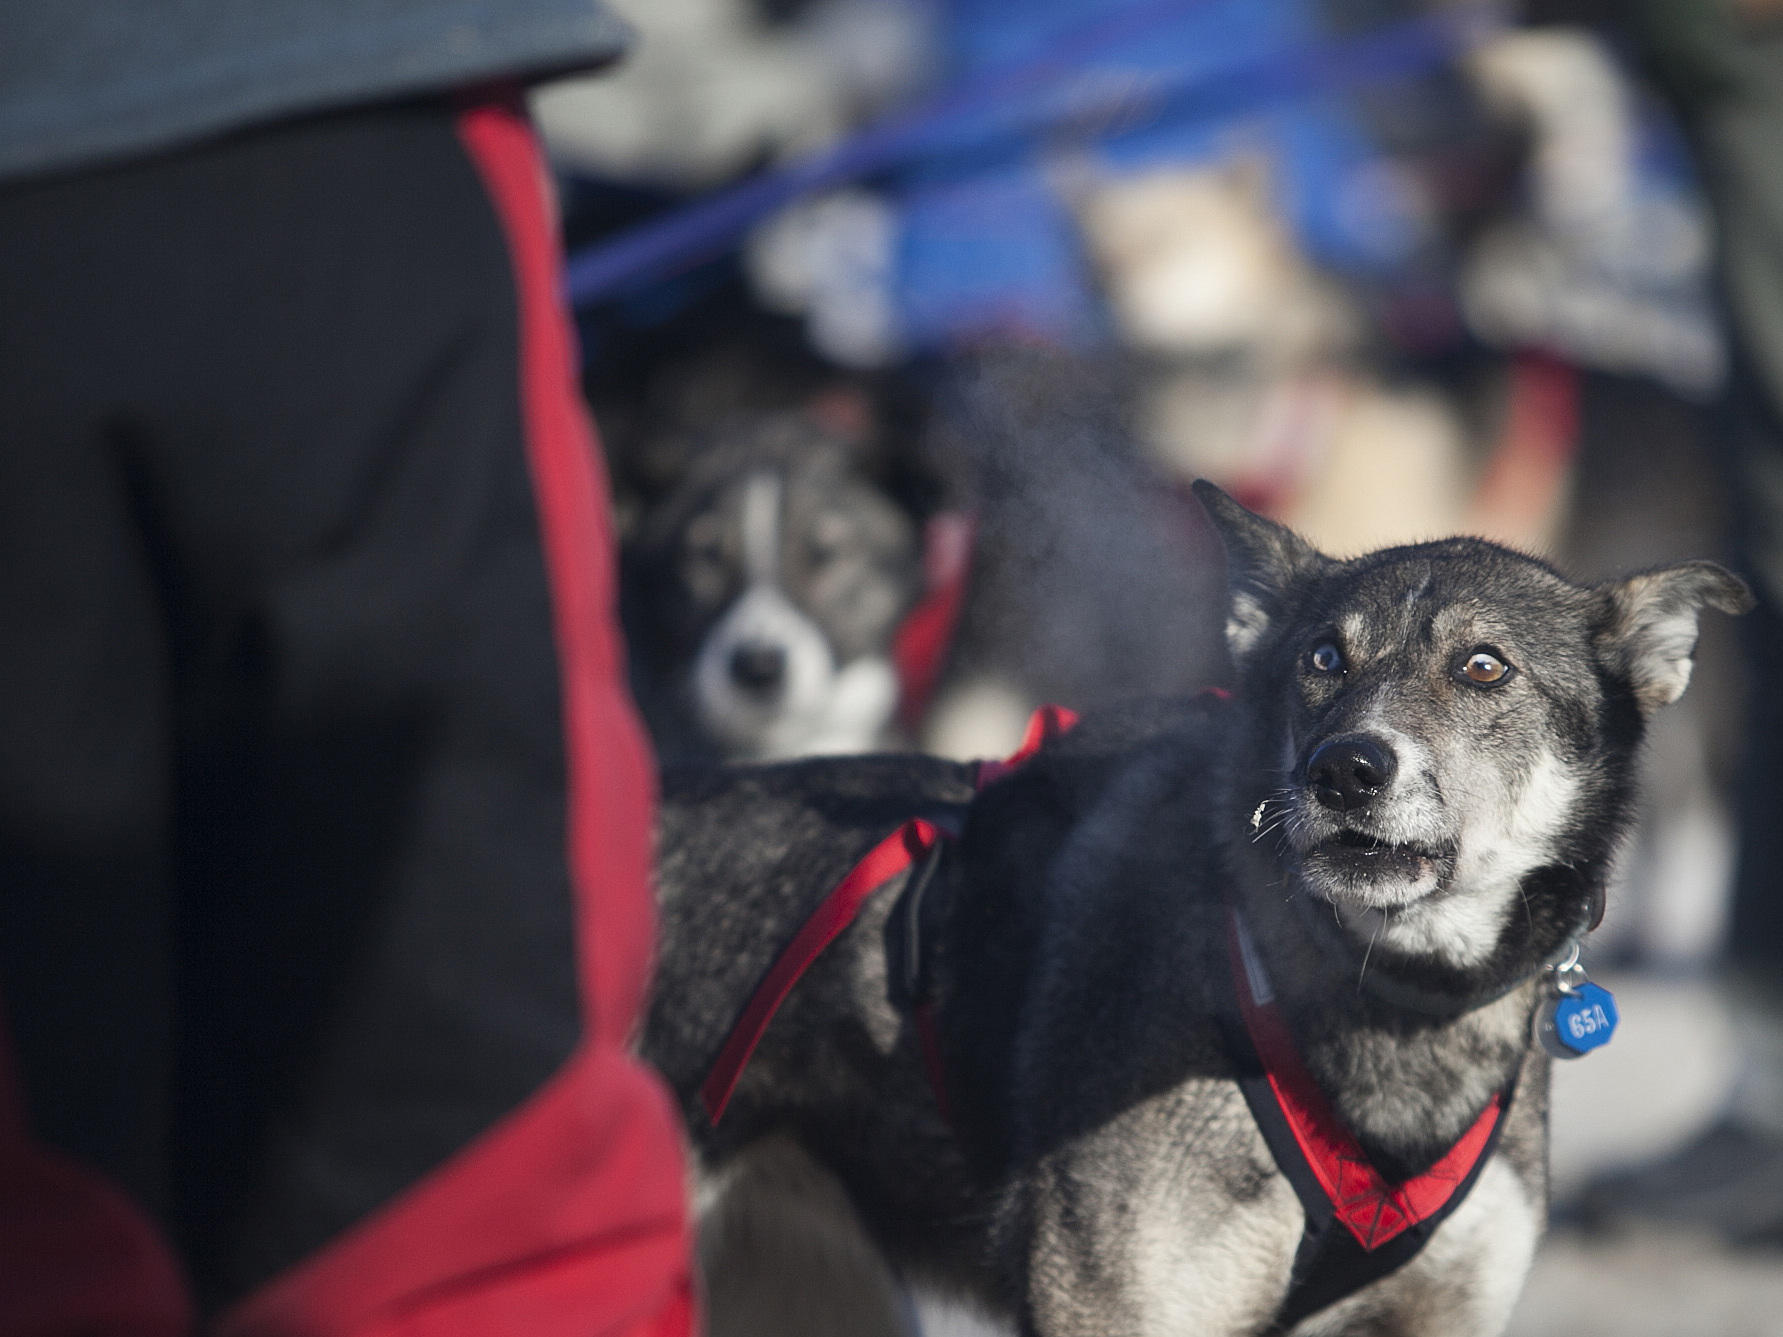 Dogs test positive for drugs in Iditarod race for first time